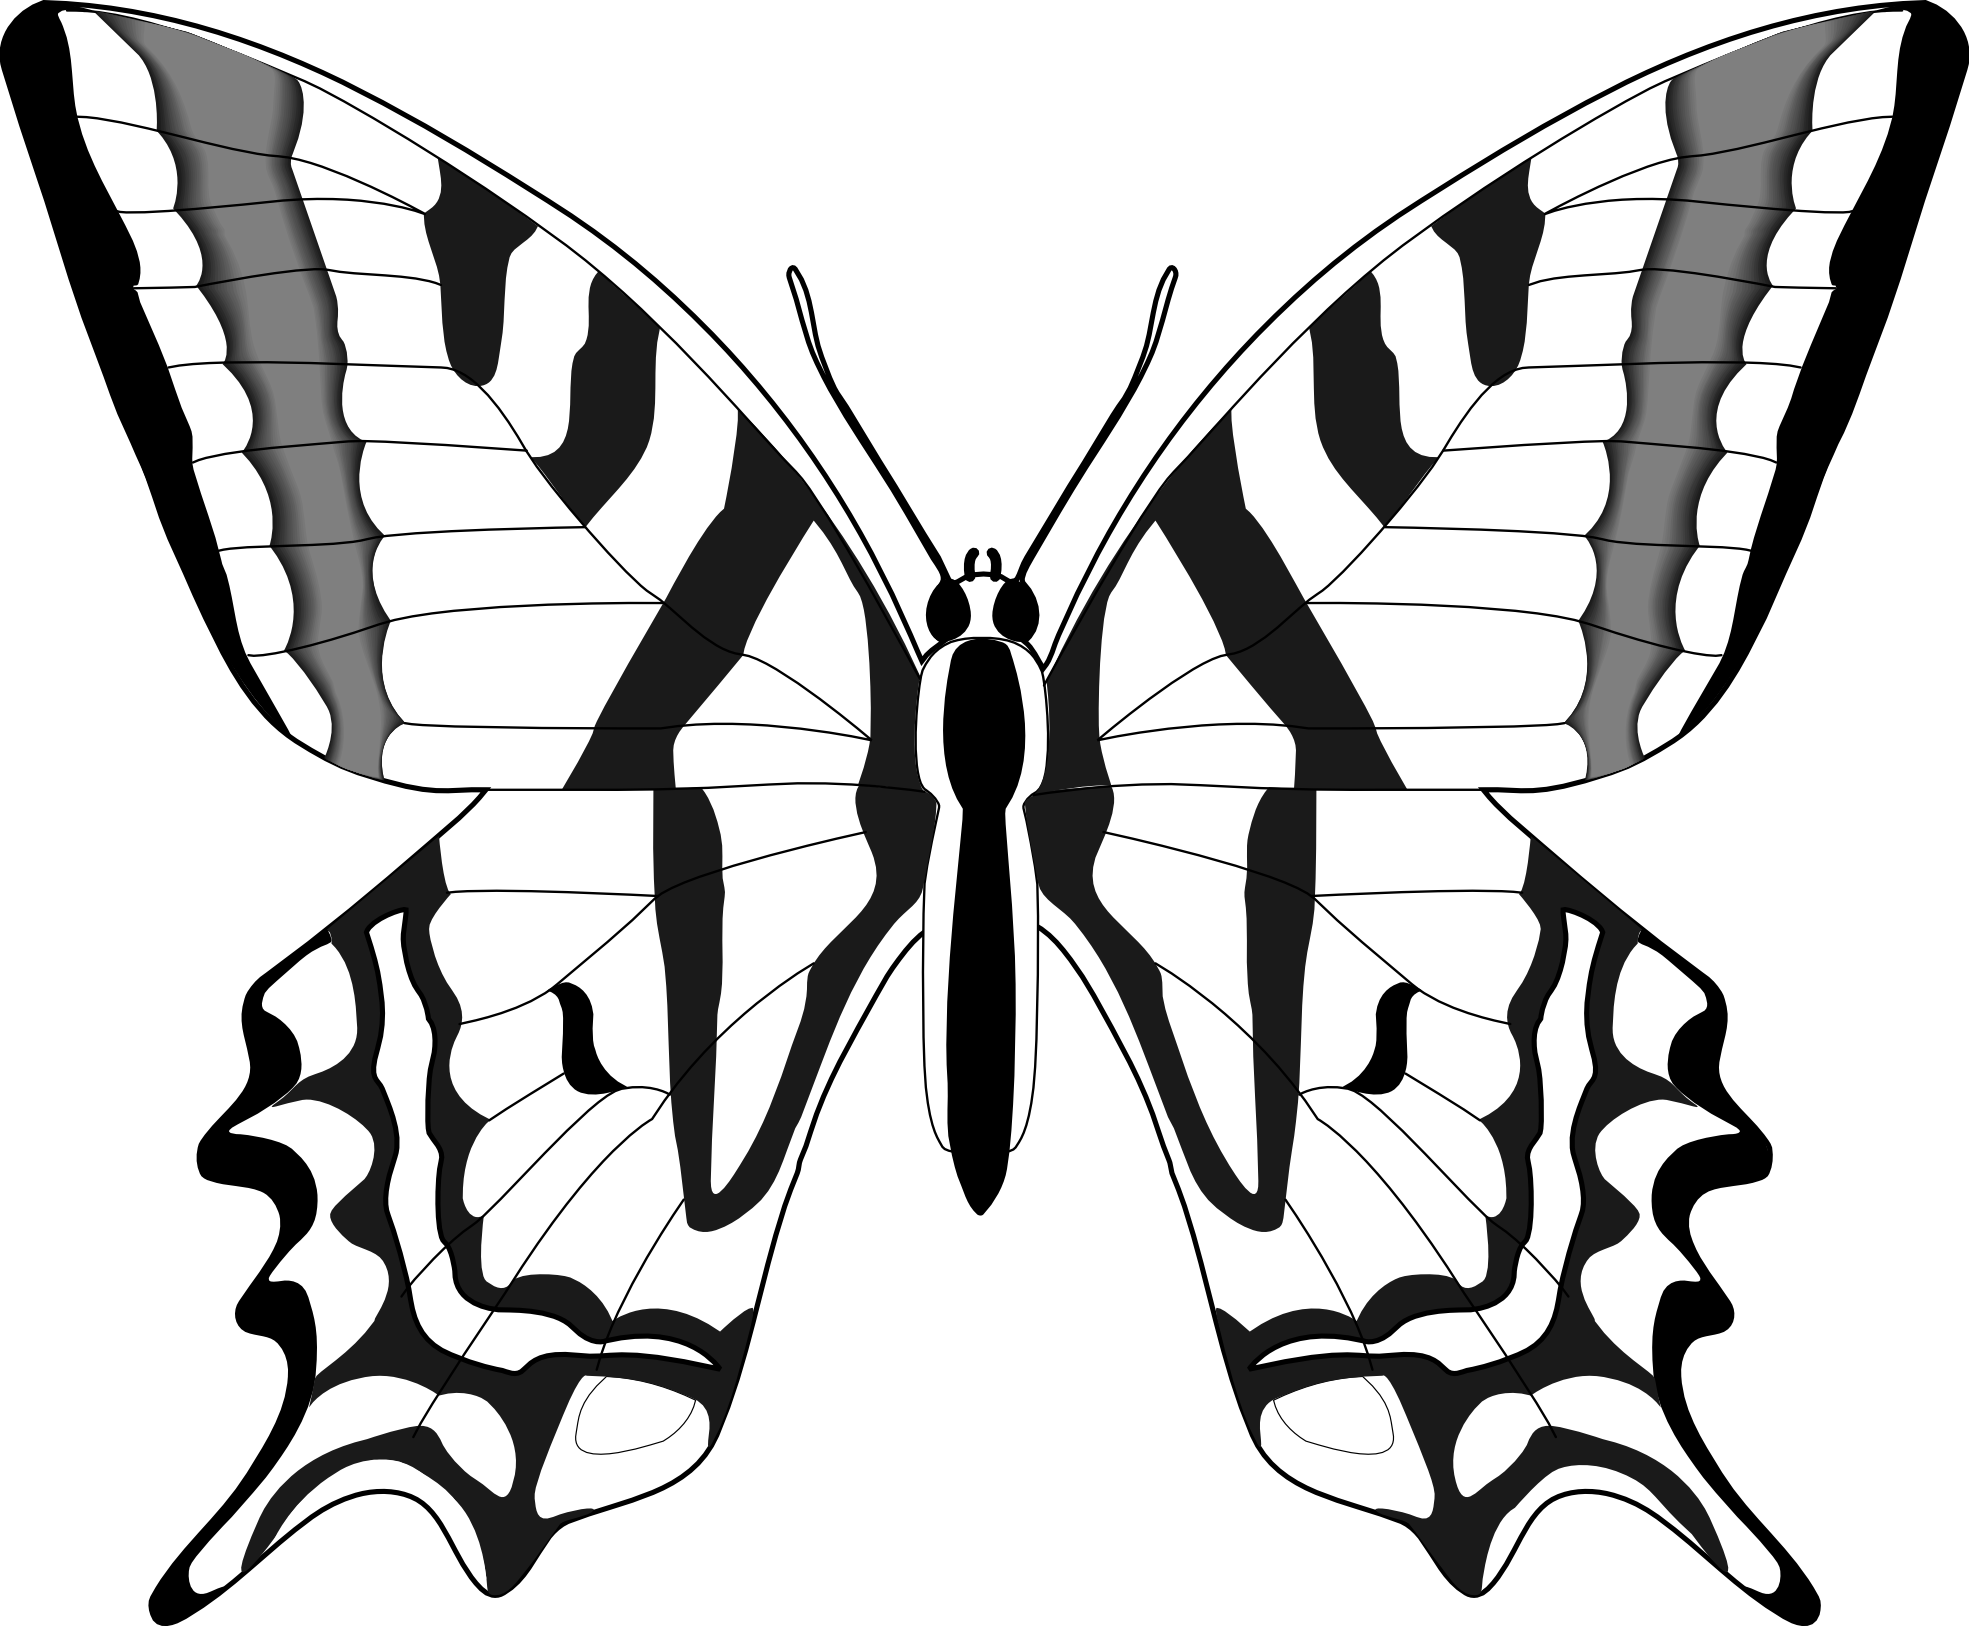 simple black and white butterfly clipart 1 butterflies rh pinterest com Black and White Bee Clip Art Bear Clip Art Black and White